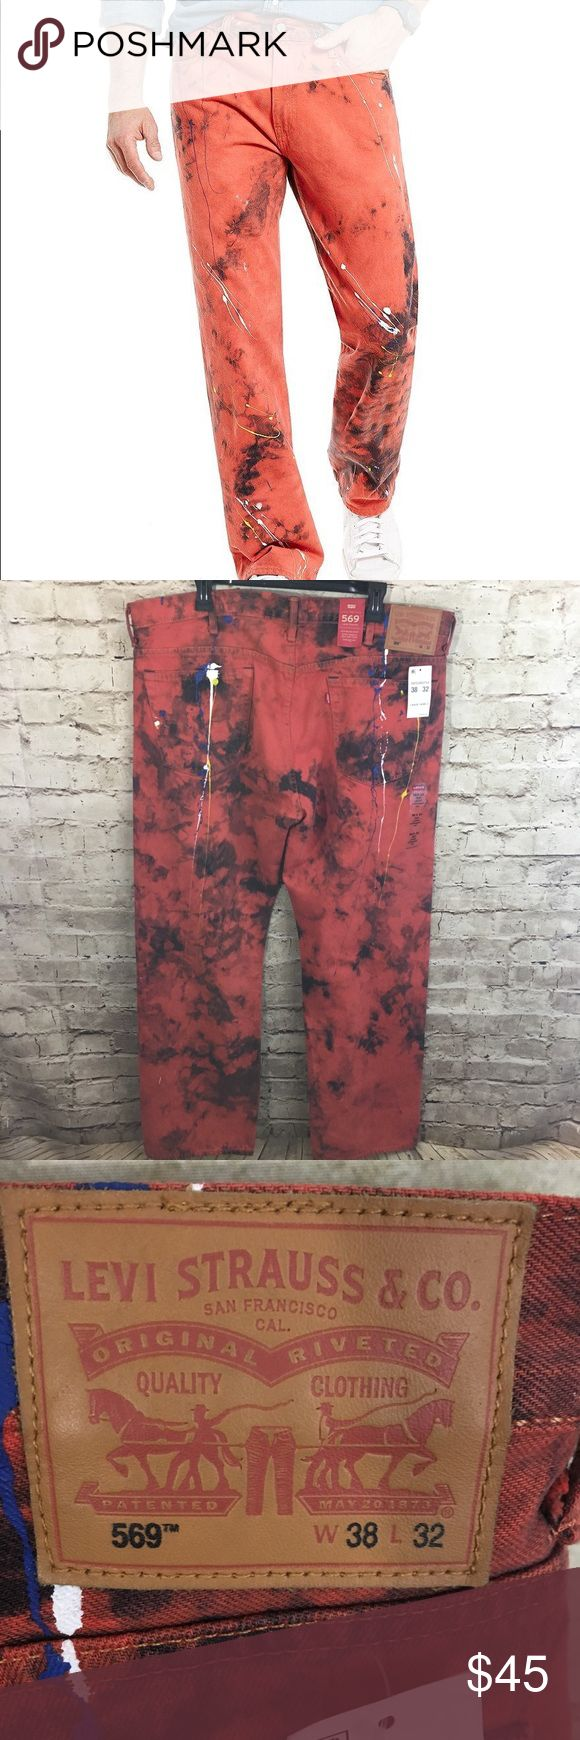 """NWT Levi's 569 Jeans Loose Straight Orange Paint Levi's Men's 569 Loose Straight Fit Relaxed Jeans   Color: Orange with Paint Splatter Size: 38x32 Leg Opening: 8.75""""  New with tags attached!  Retails at $69.50! Buy here at a fraction of the original price. Levi's Jeans Straight"""